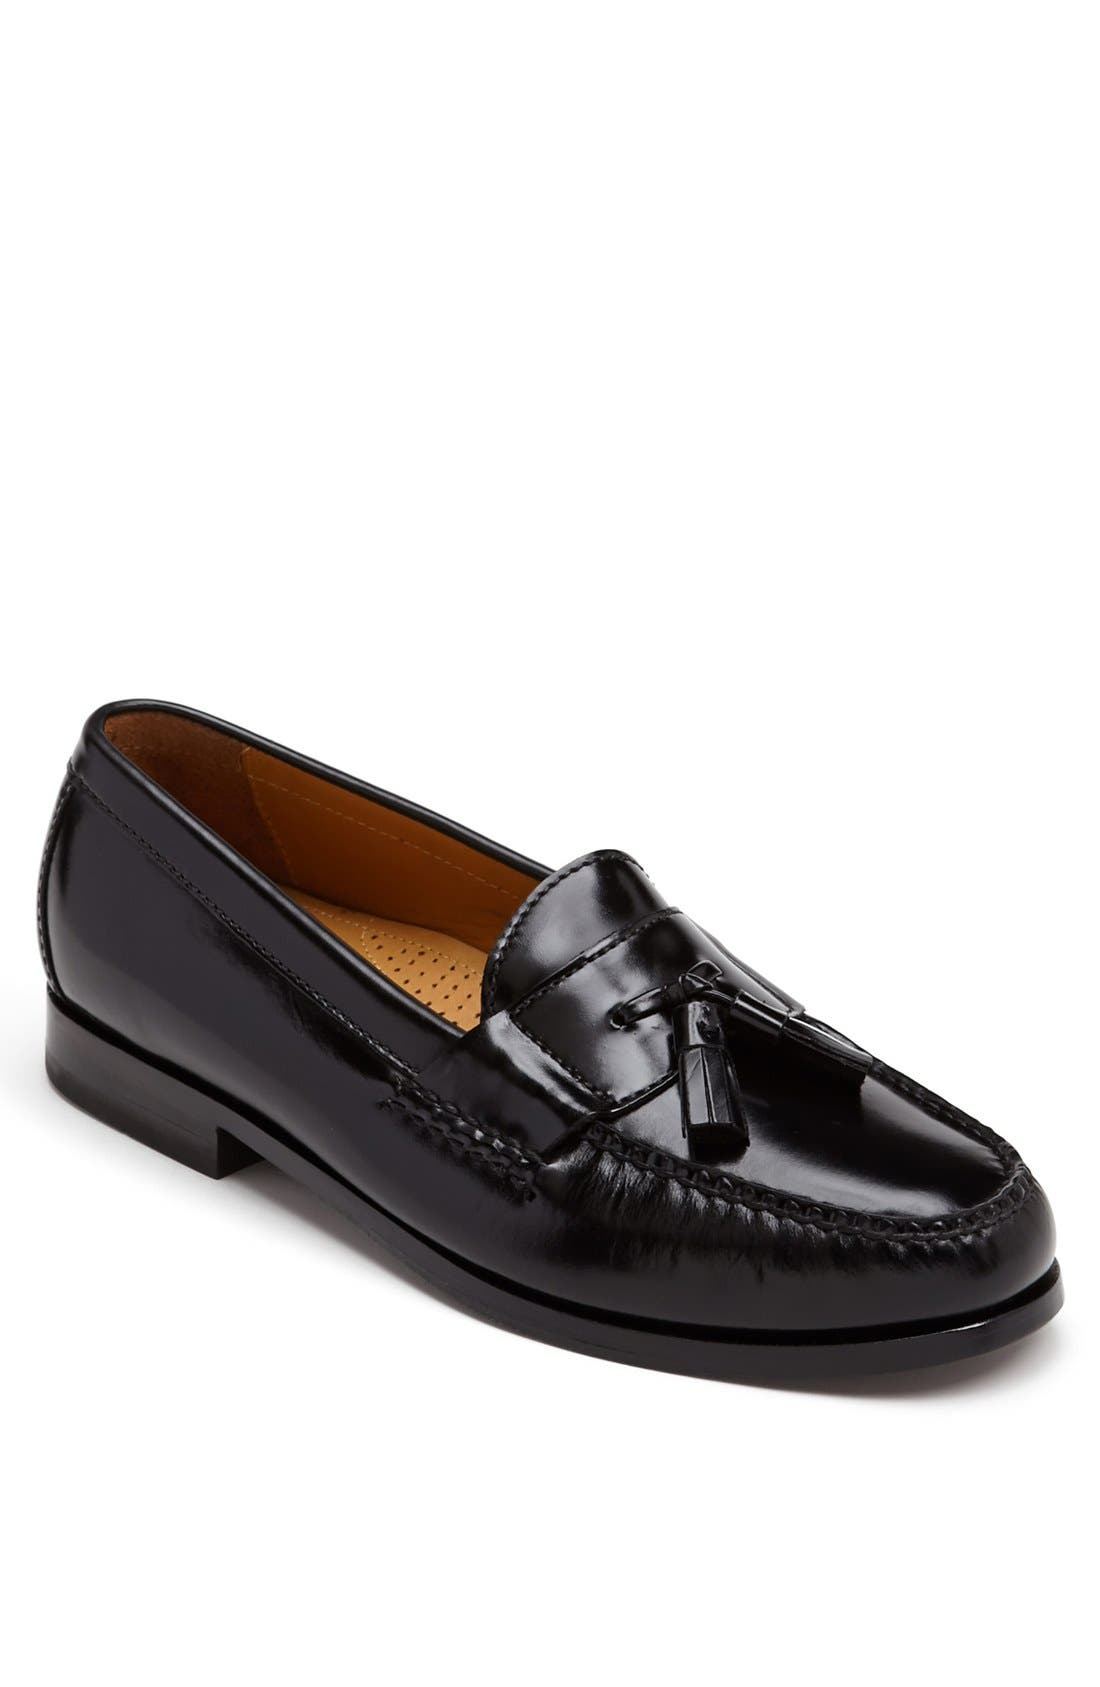 Main Image - Cole Haan 'Pinch Air Tassel' Loafer (Online Only)   (Men)